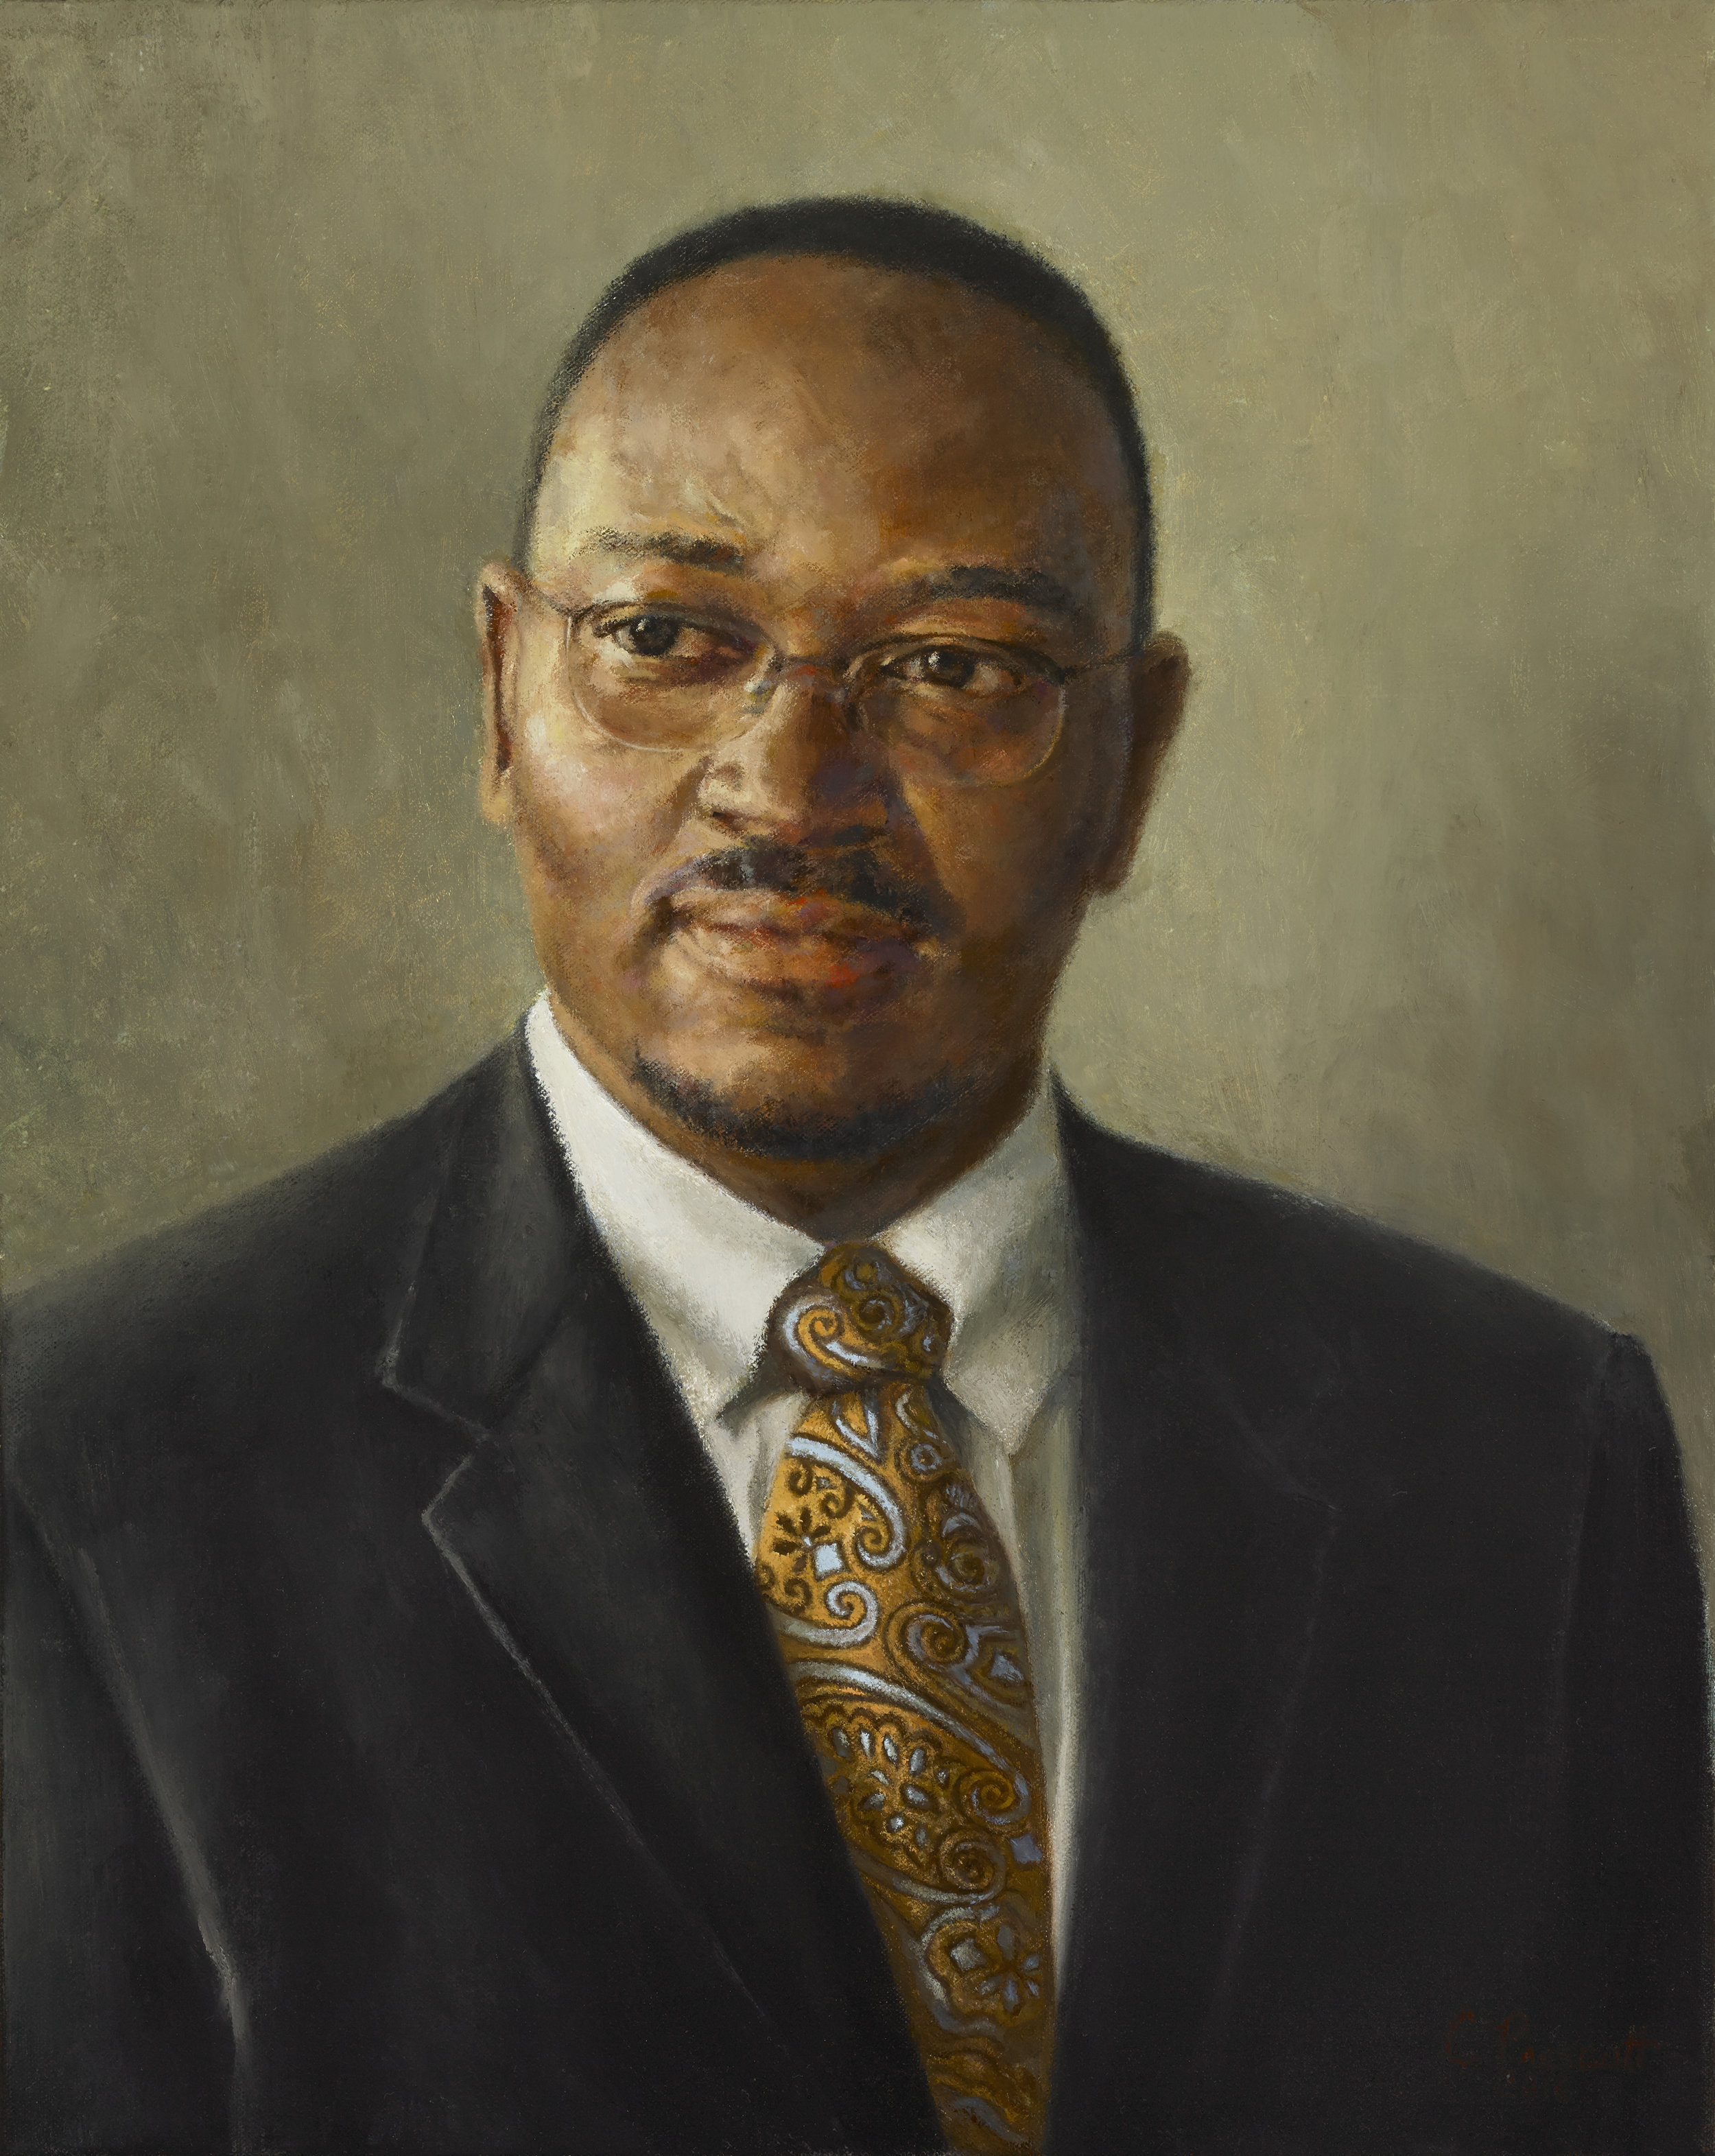 """The Honorable Reverend Clementa C. Pinckney, 2016, Oil on Canvas, 20"""" x 16"""", Private Collection  Pastor of Emanuel AME Church, Charleston, and one of the nine killed June, 2015"""